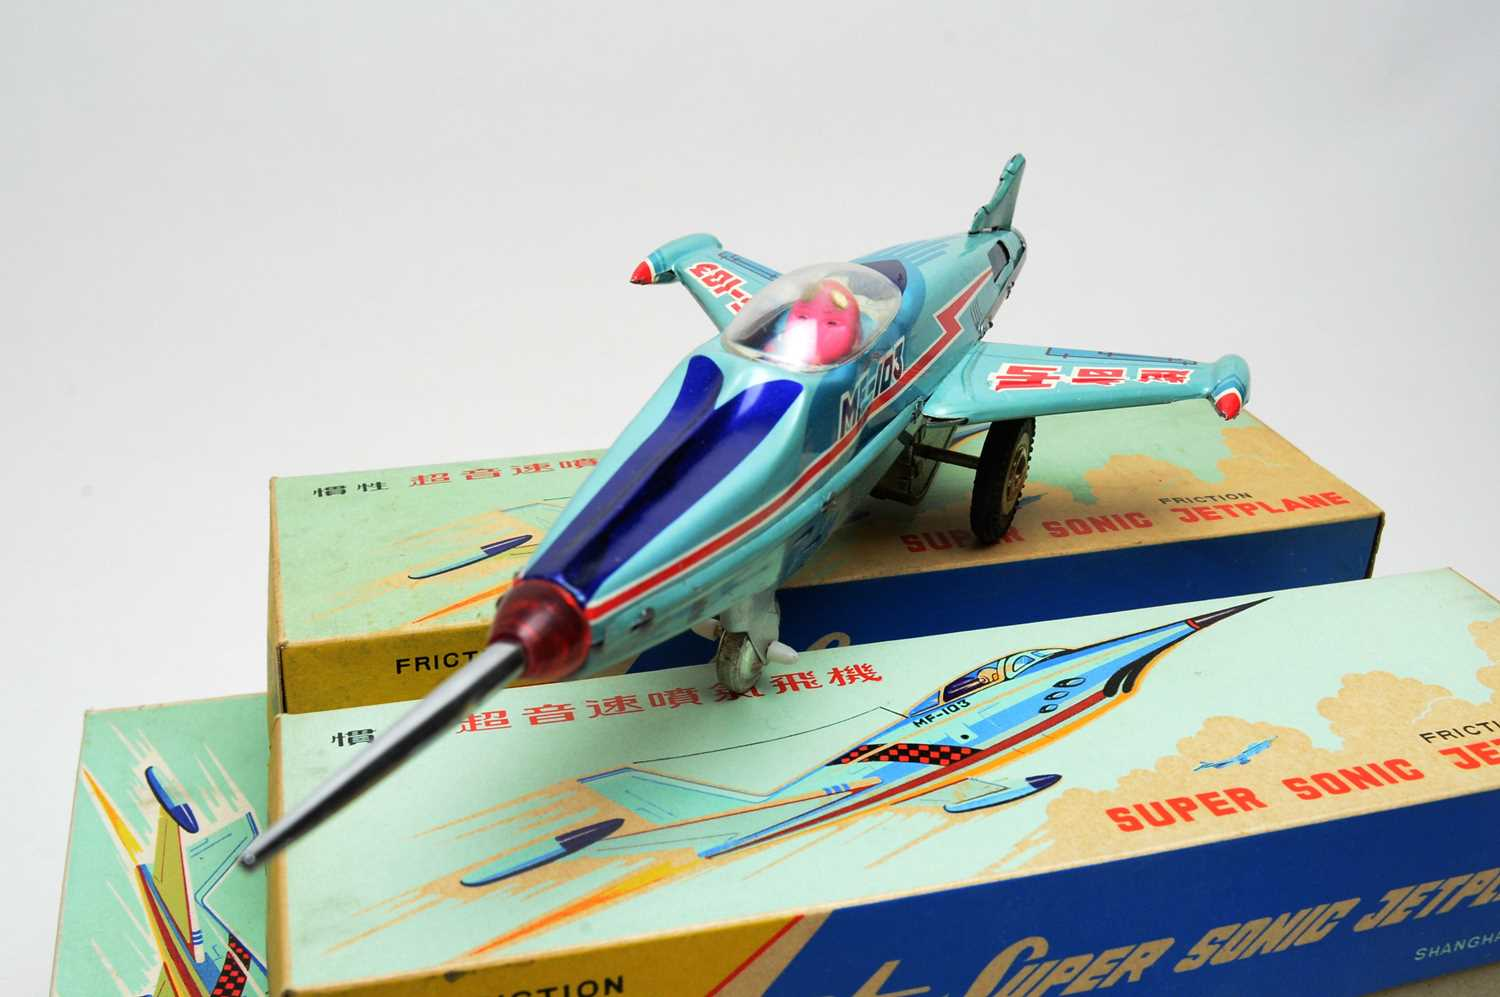 Twelve boxed Friction Supersonic Jetplane scale model aircraft. - Image 2 of 2